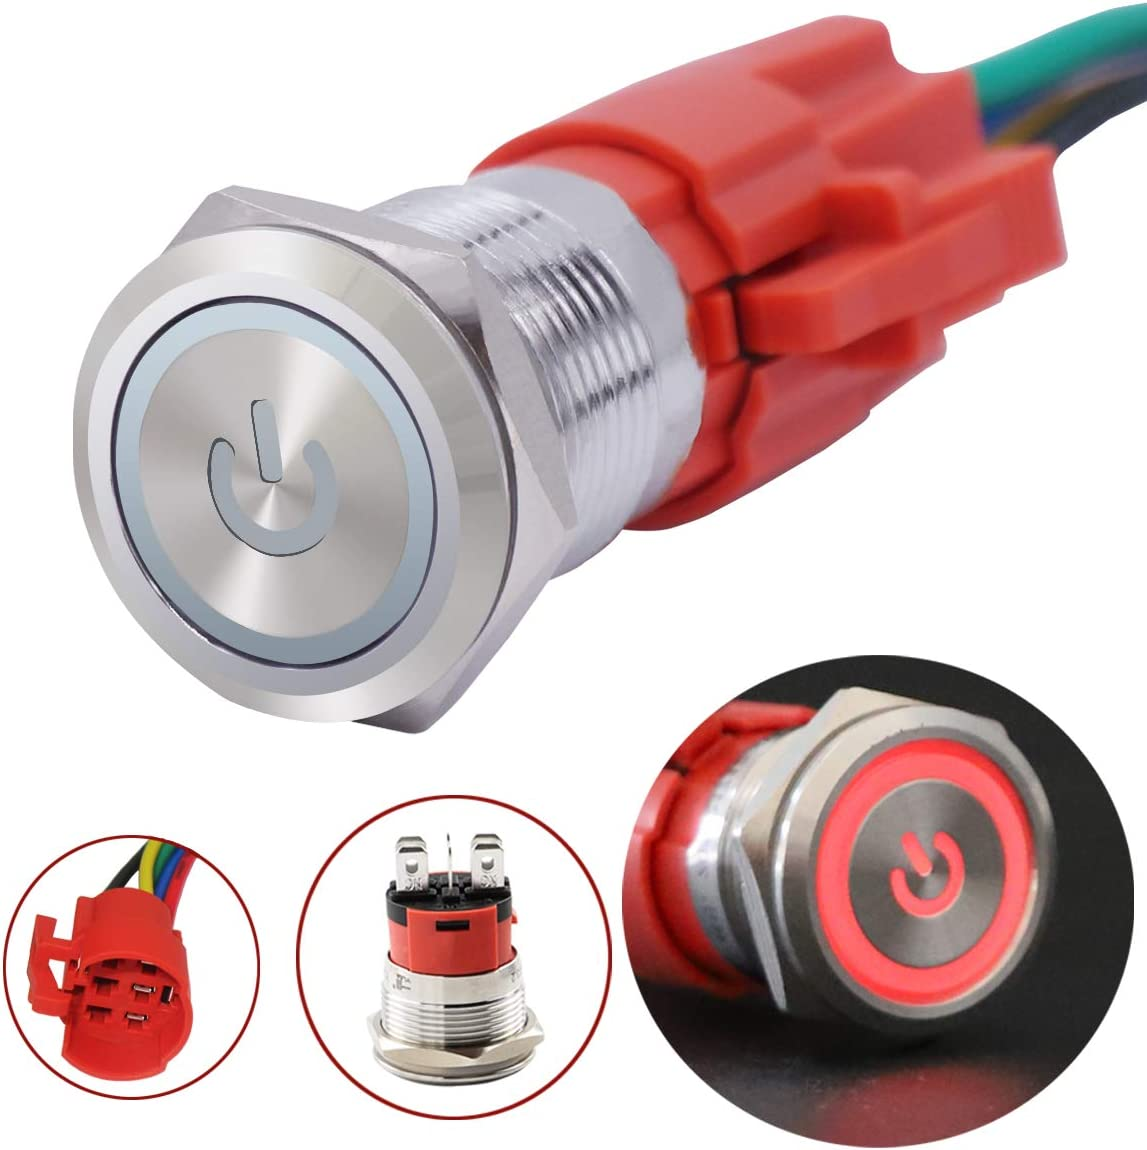 5 Year Warranty YJ-GQ16BF-D-L-Y Yellow LED Ring Switch 1NO 1NC with Wire Socket Plug TWTADE 16mm IP65 Waterproof Latching Power Metal Push Button Switch 5//8 5A DC12V Stainless Steel Shell